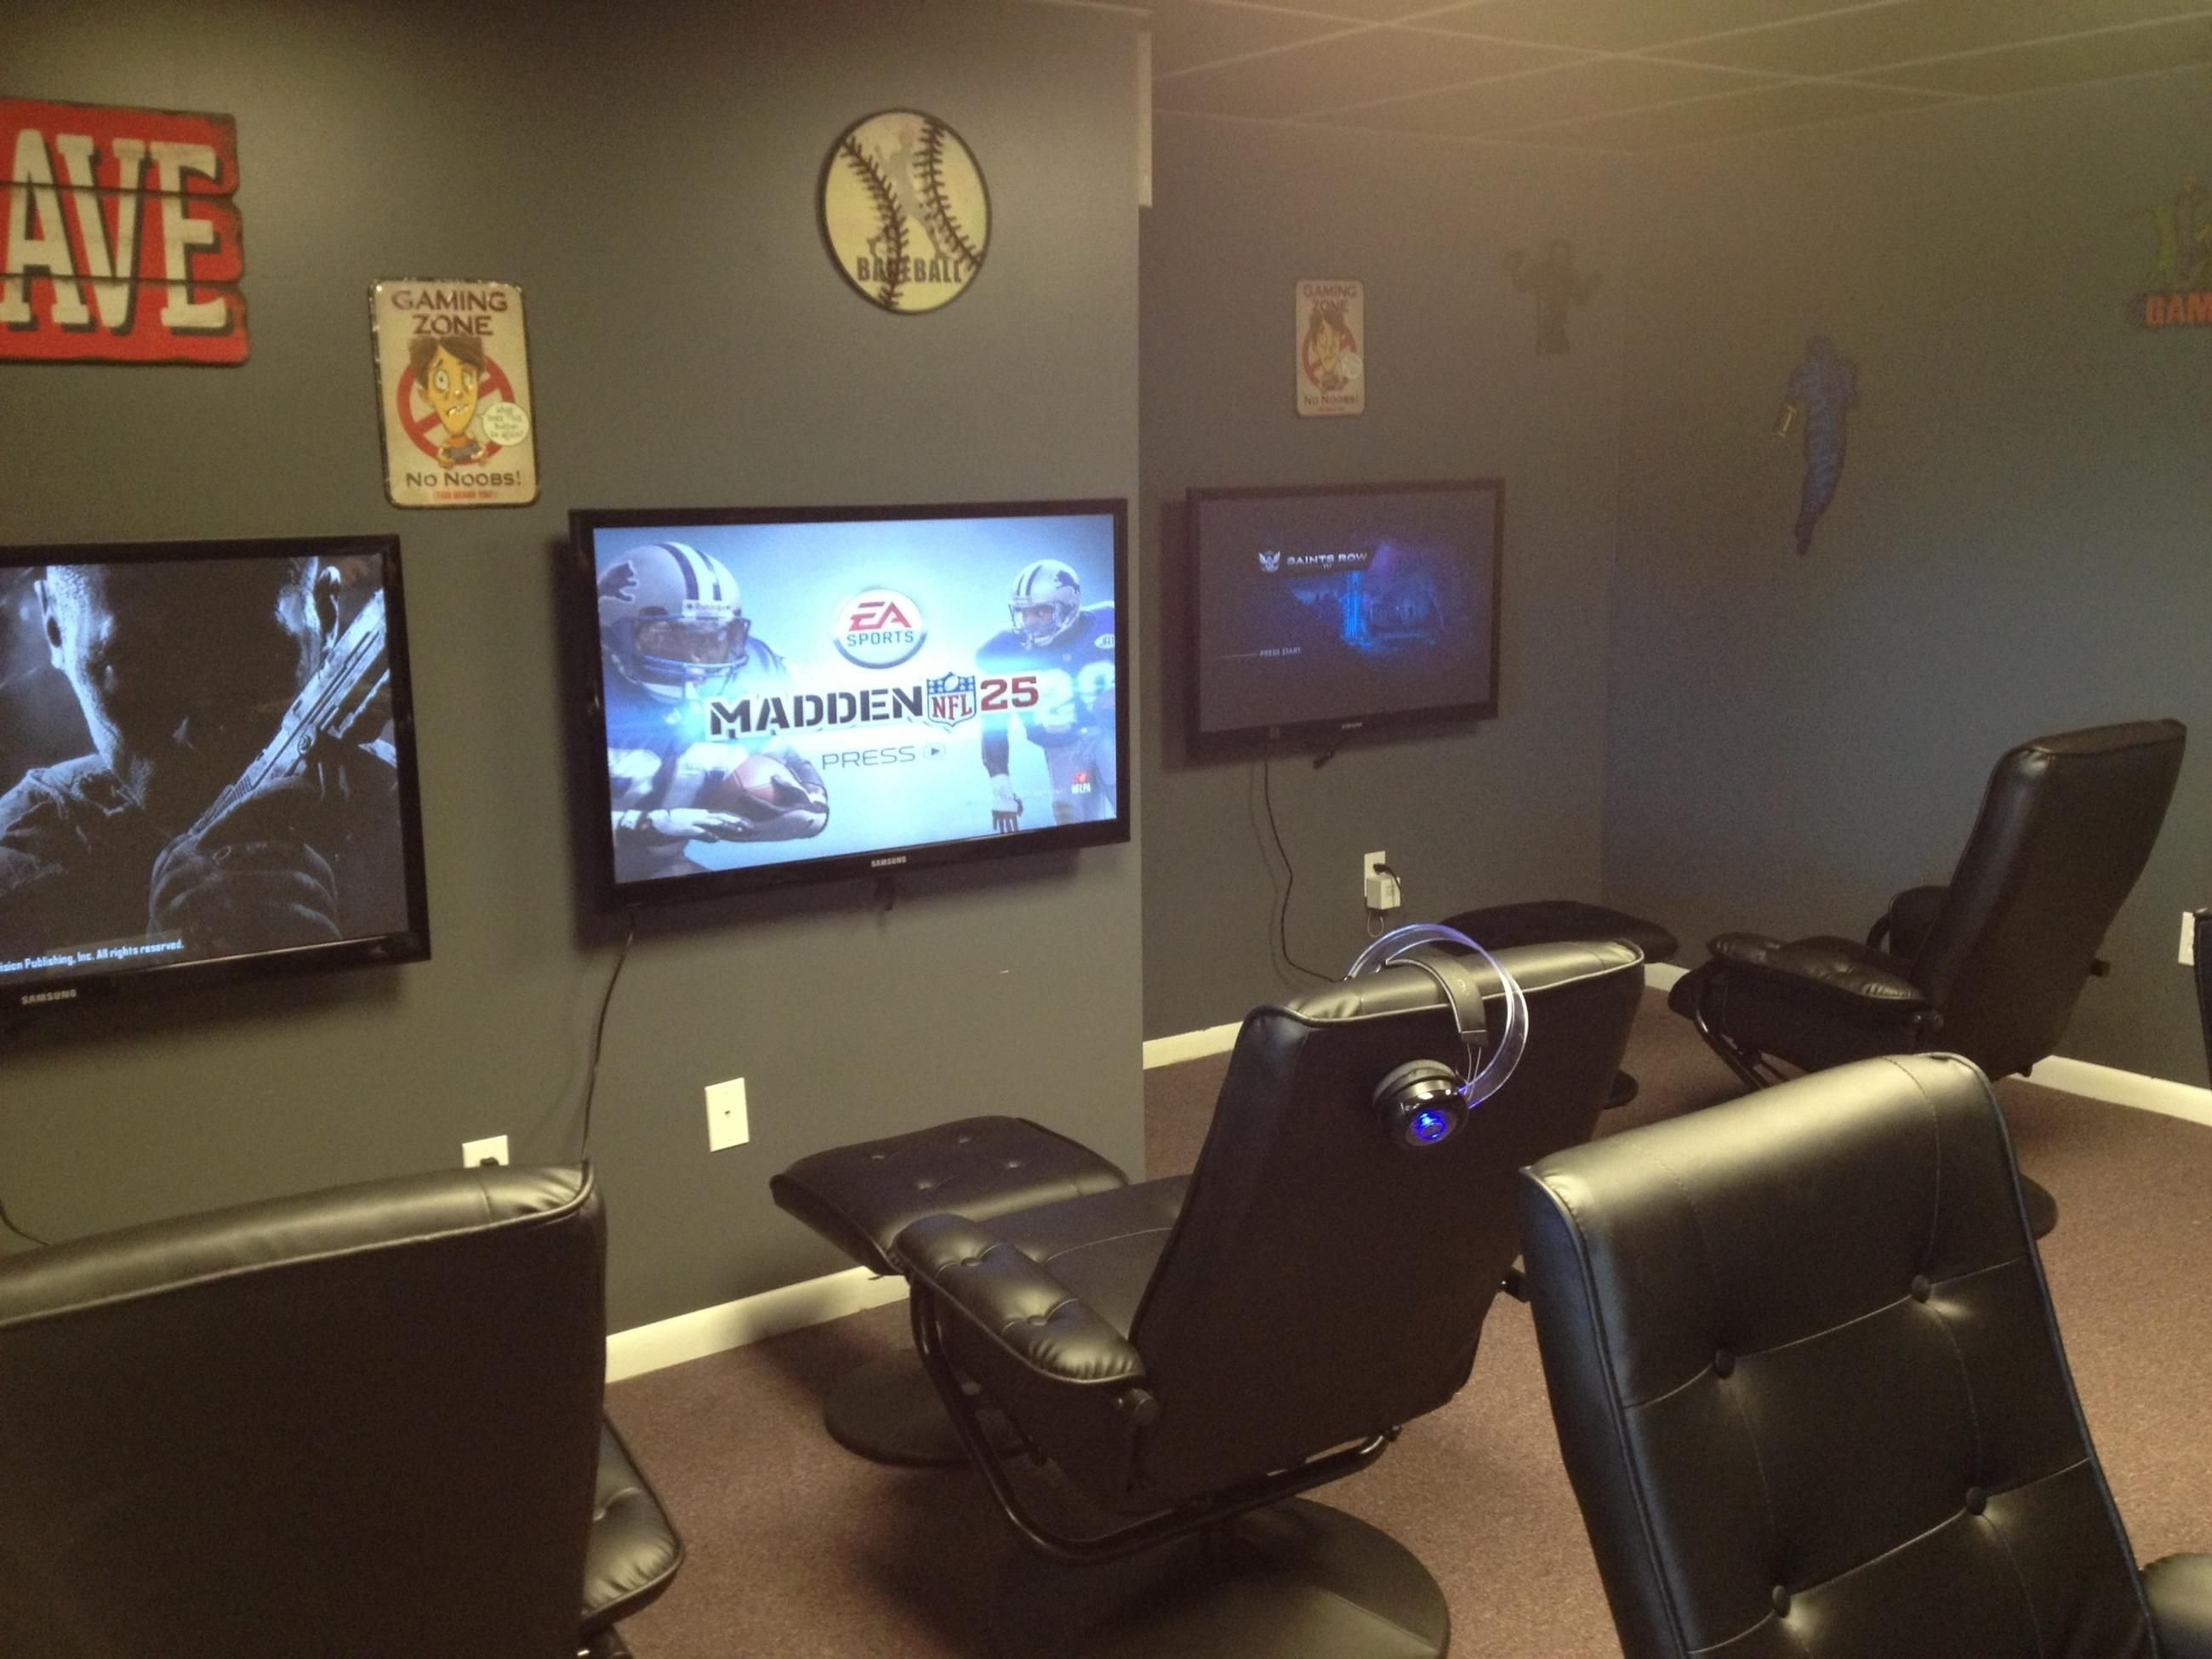 10 Nice Game Room Ideas For Teenagers 45 video game room ideas to maximize your gaming experience game